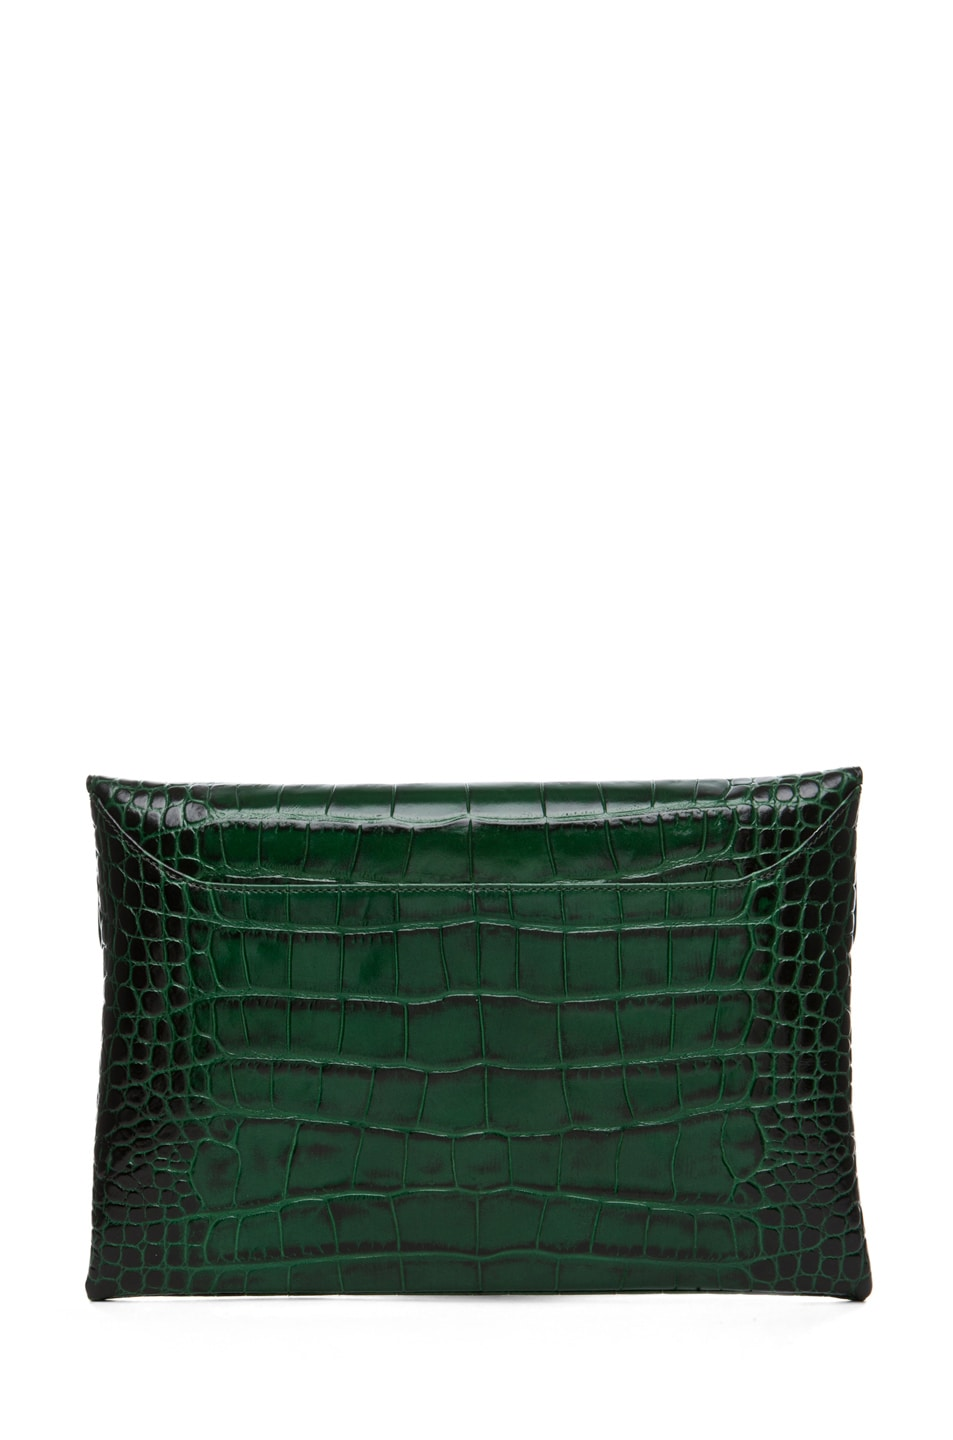 Image 2 of GIVENCHY Anitgona Croc Envelope Clutch in Emerald Green